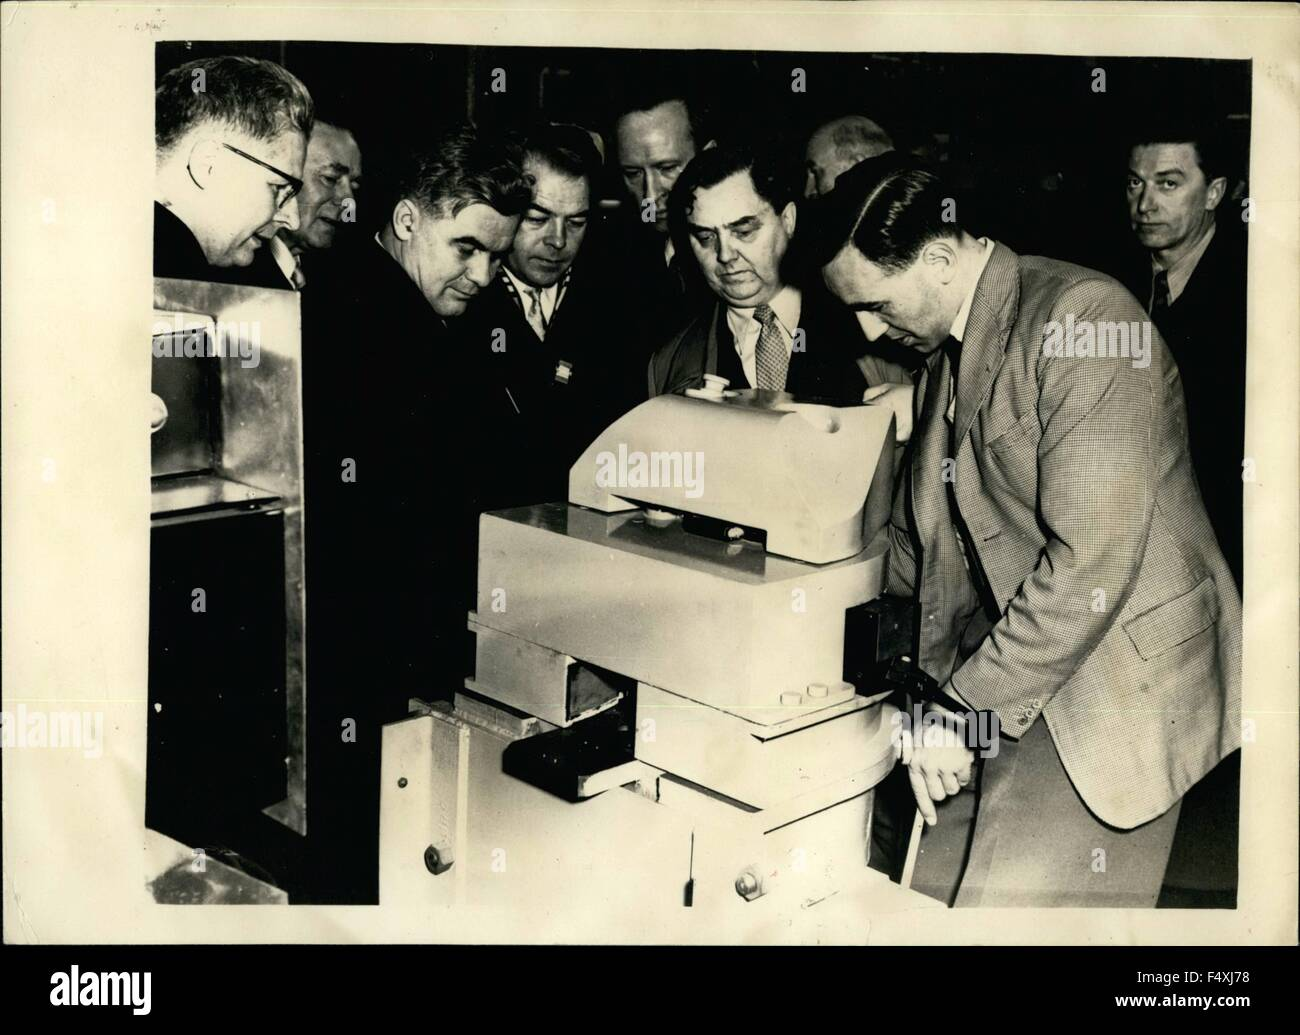 1954 - Mr. Malenkov Tours Atomic Research Station.: M. Malenkov accompanied by a party of atomic research station - Stock Image